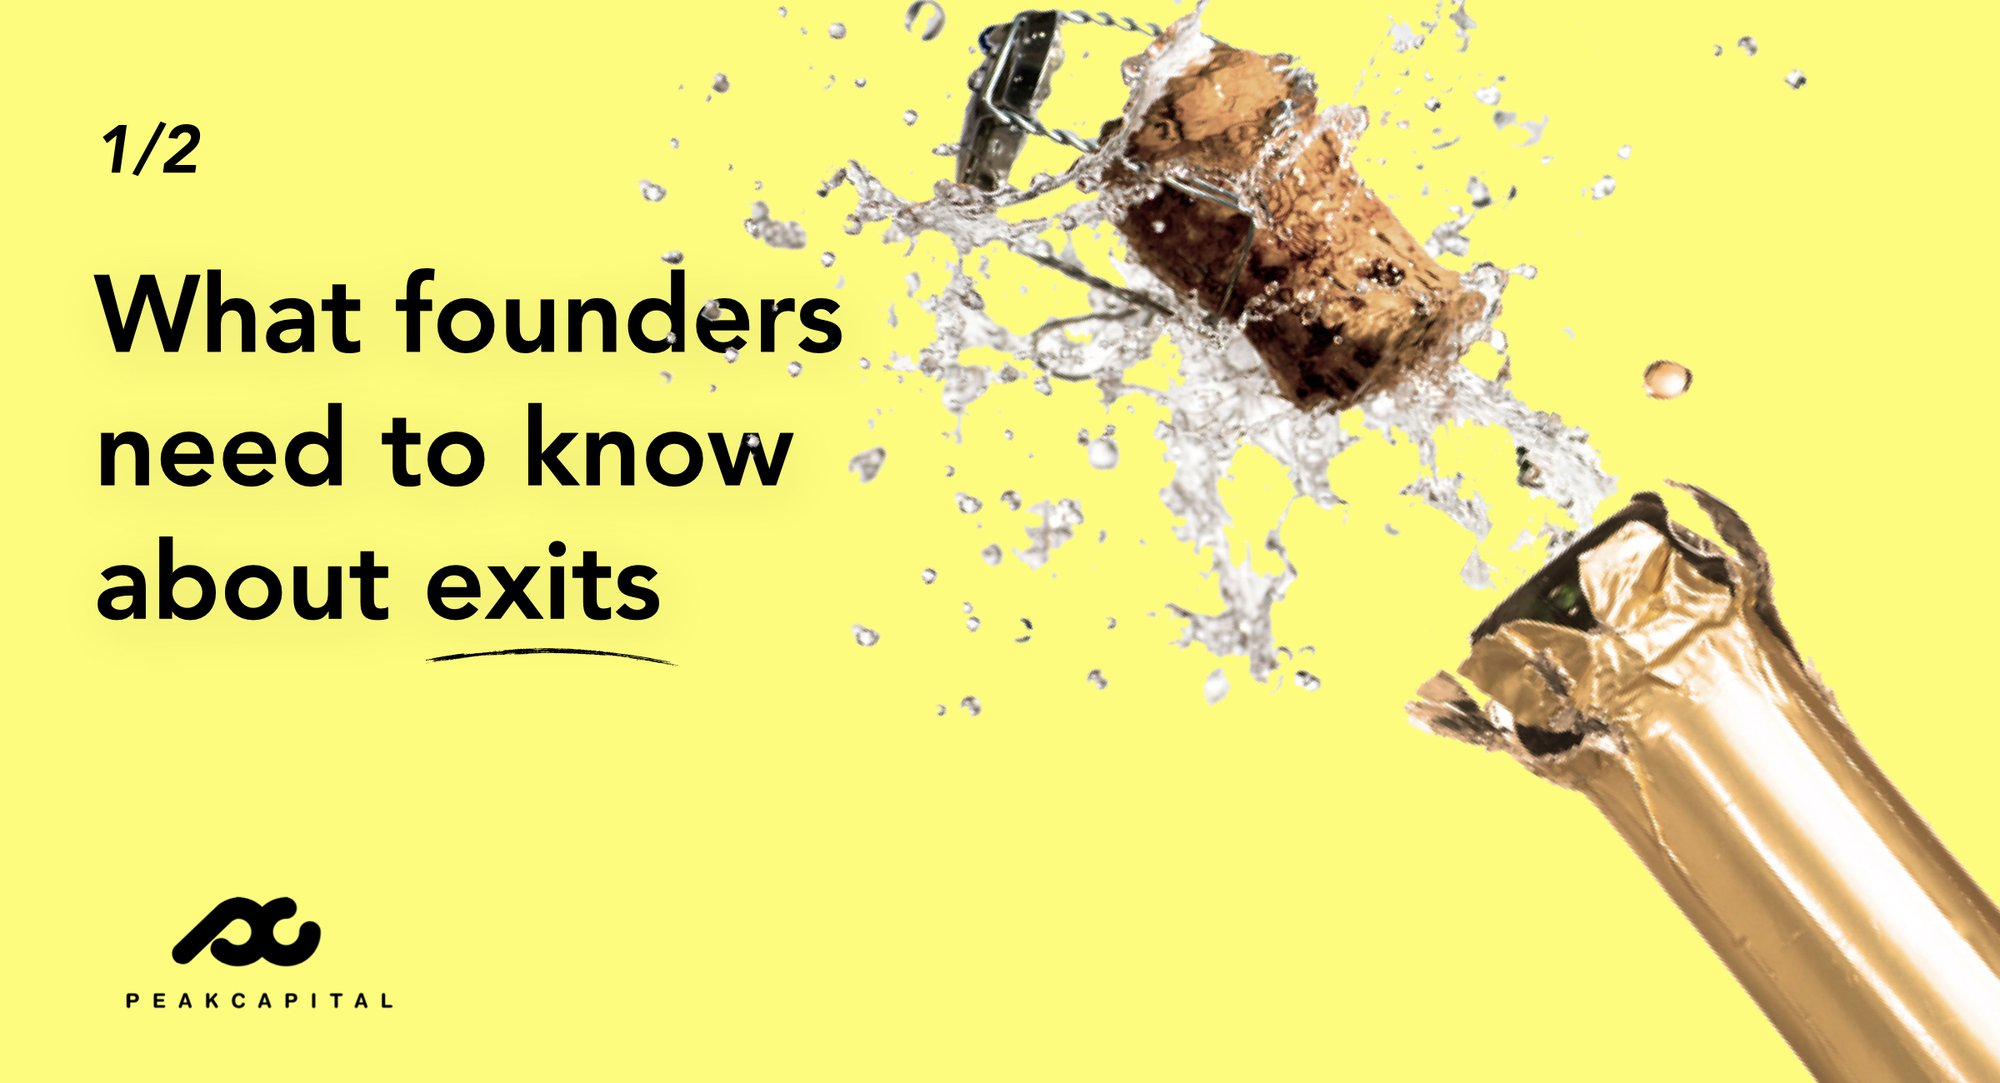 What Europe's Founders Need to Know about Exits (part 1)